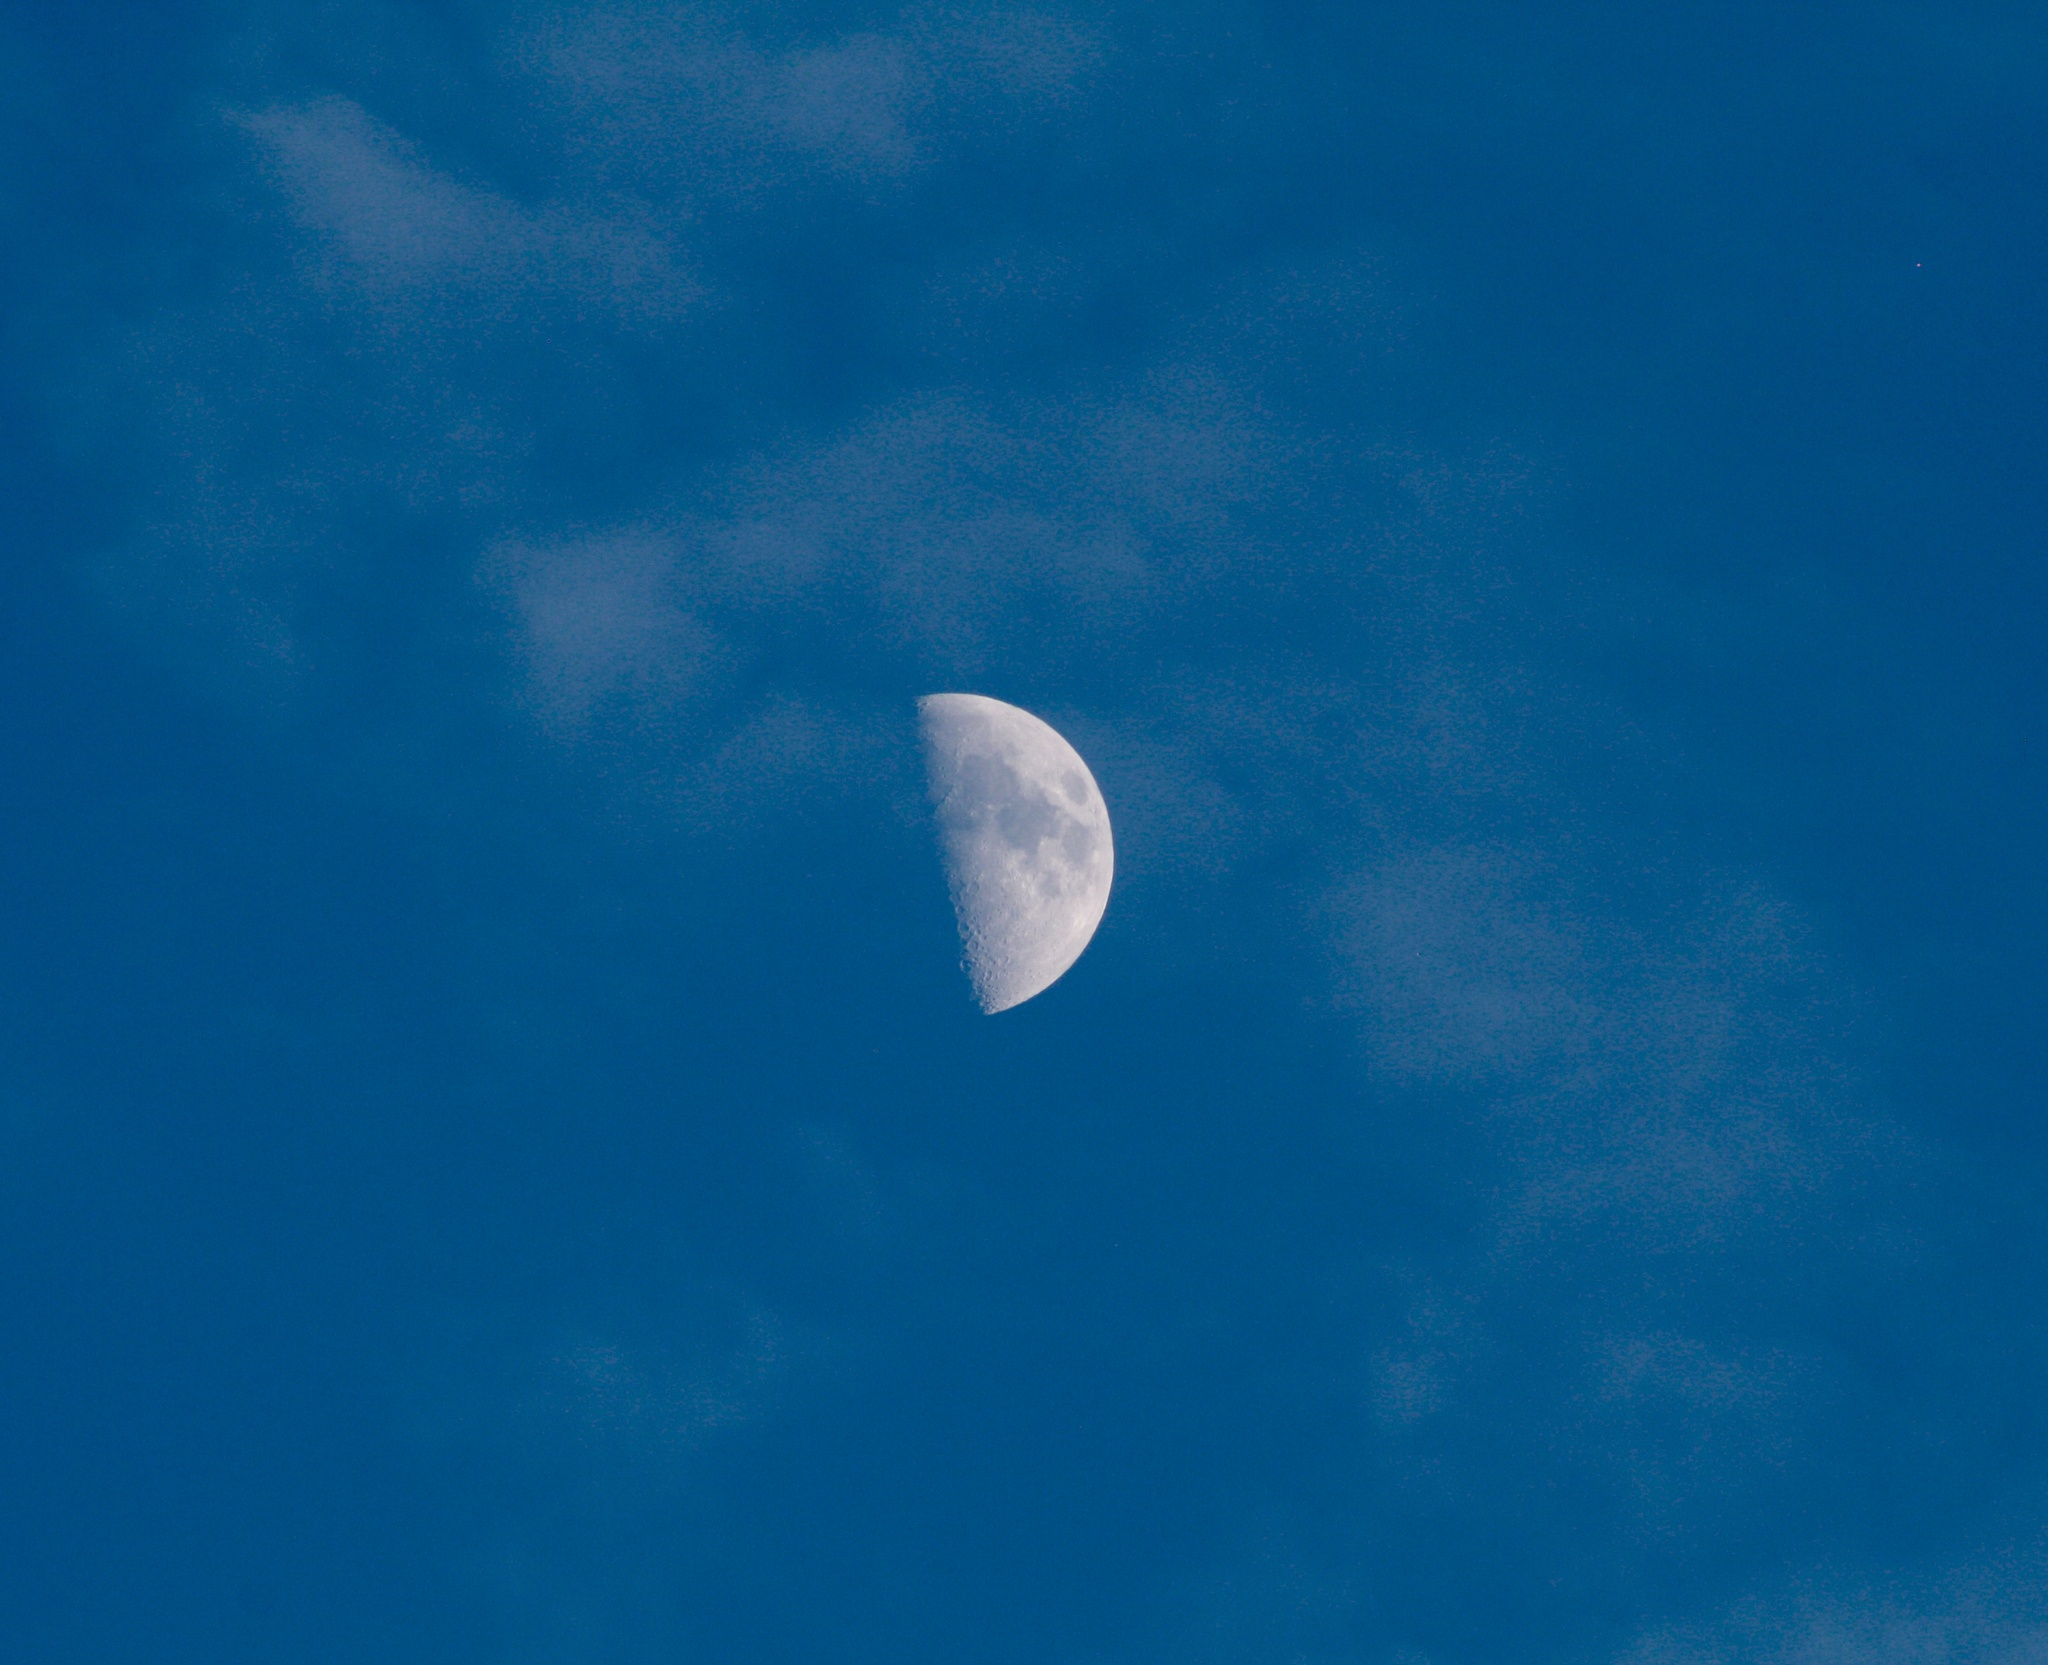 afternoon moon by slaac